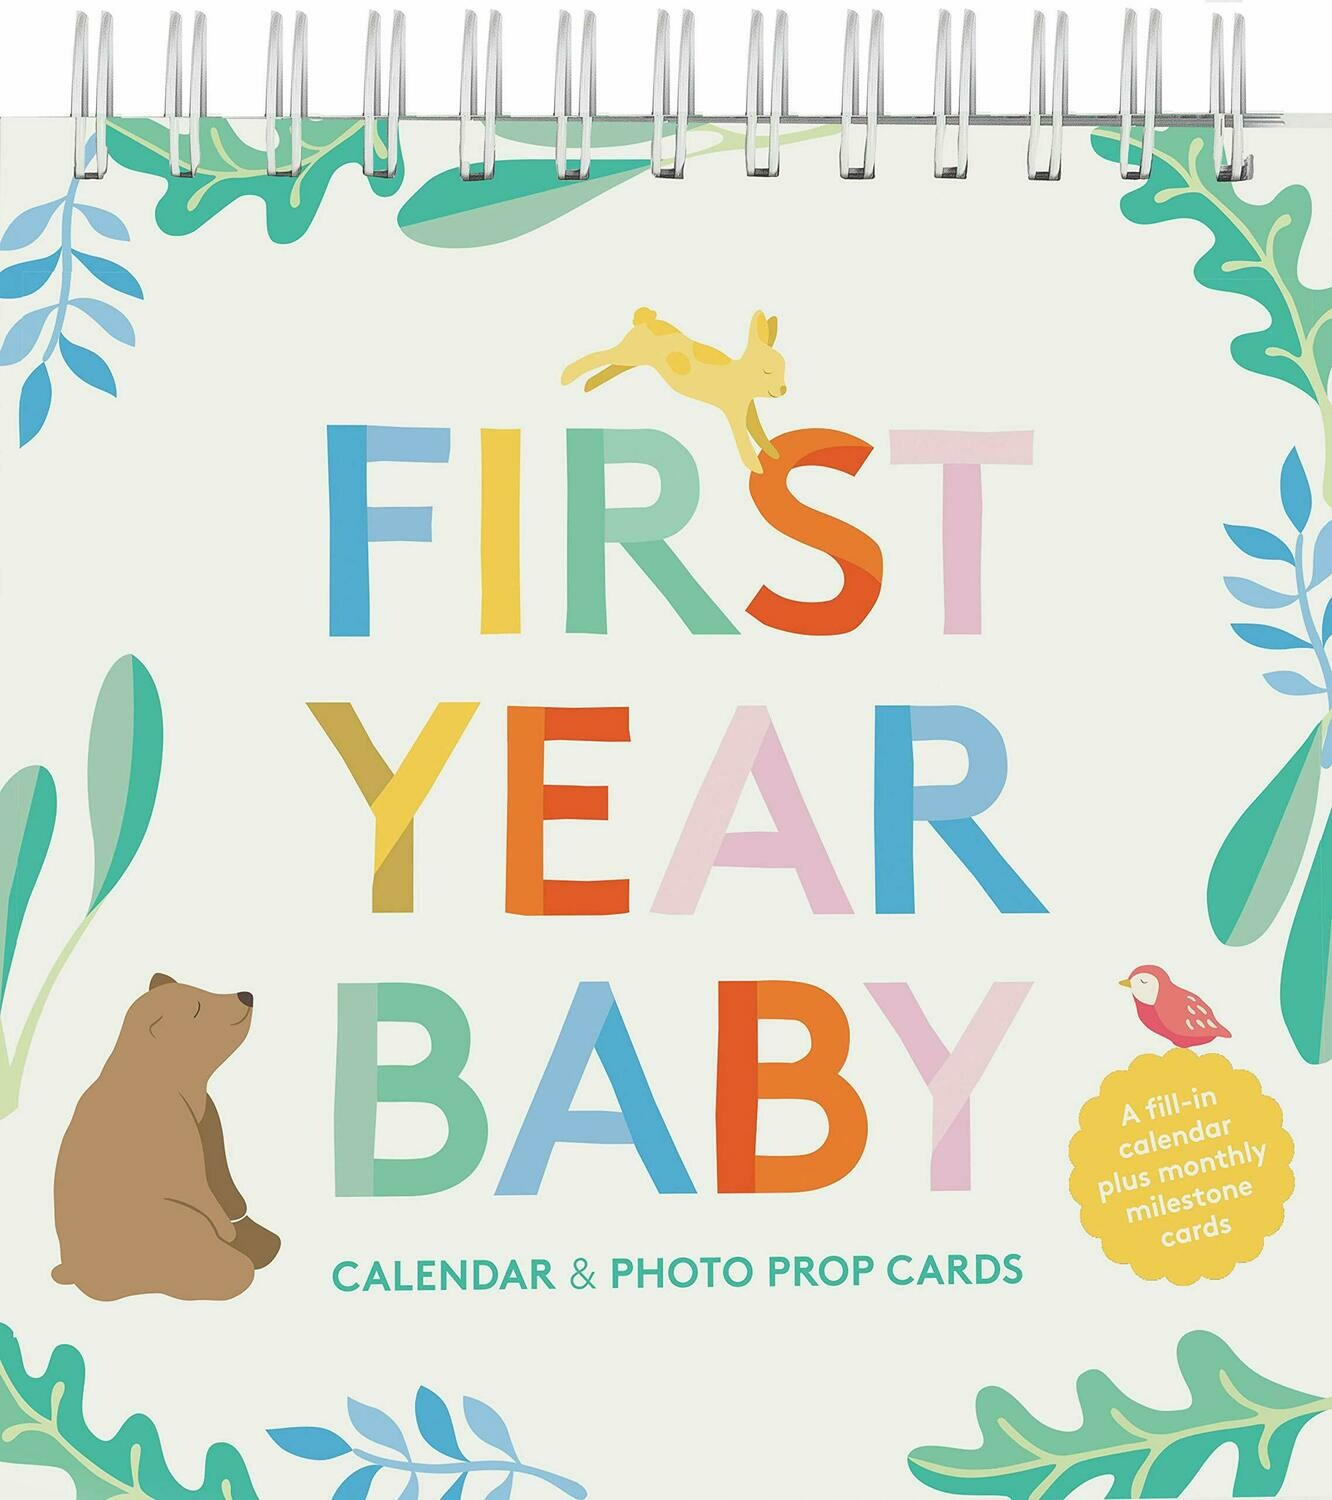 First Year Baby